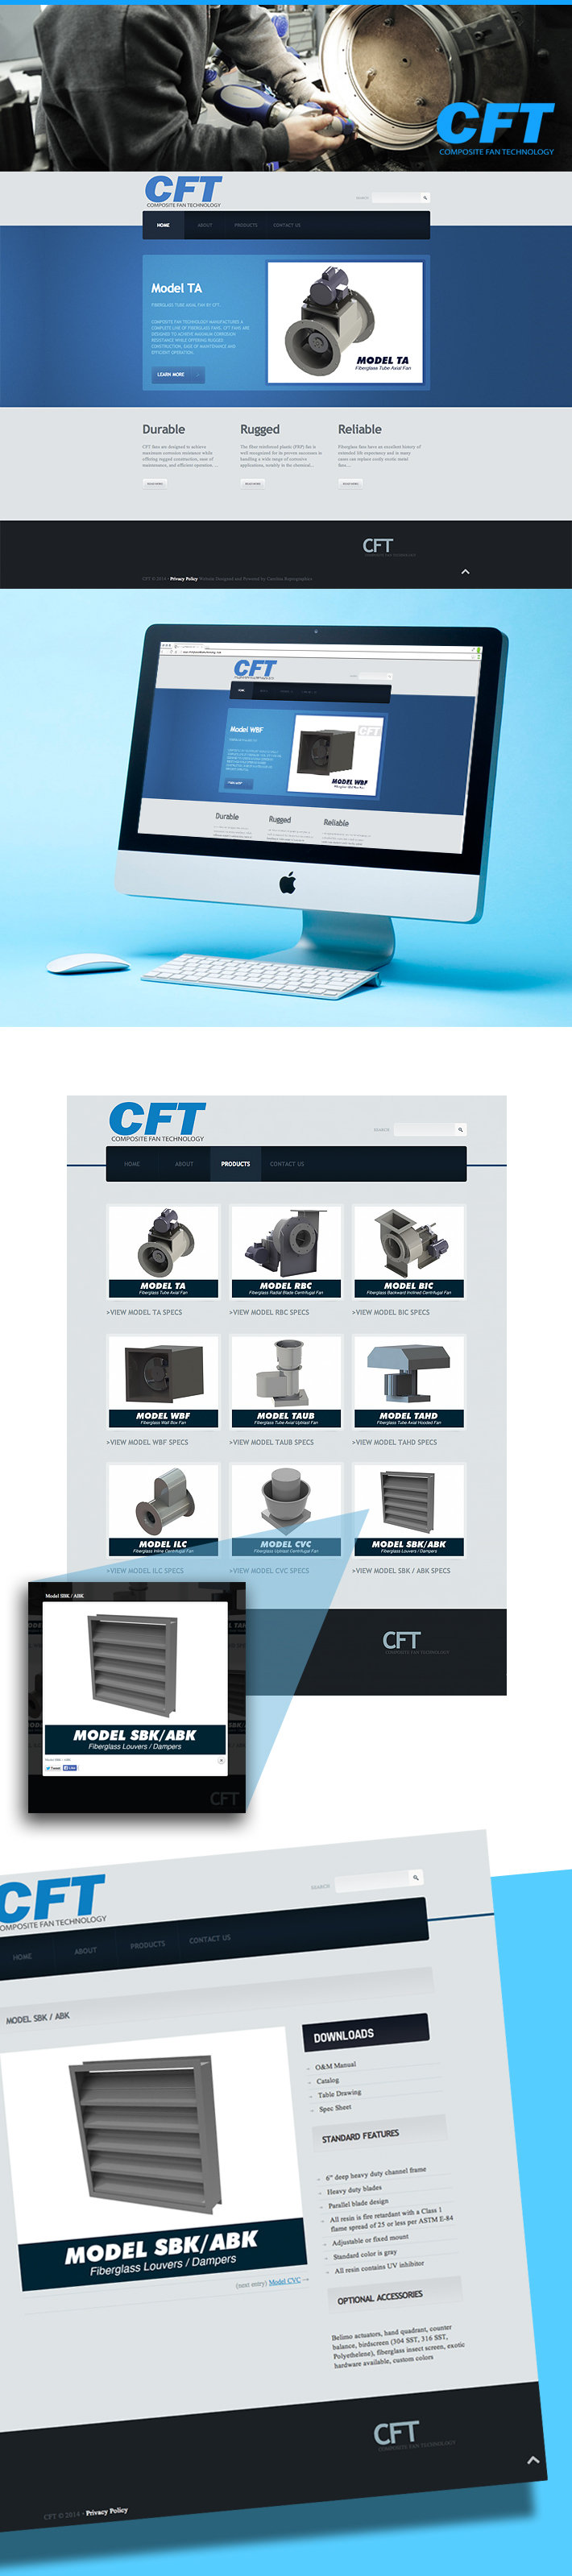 cft_website_project-graphic